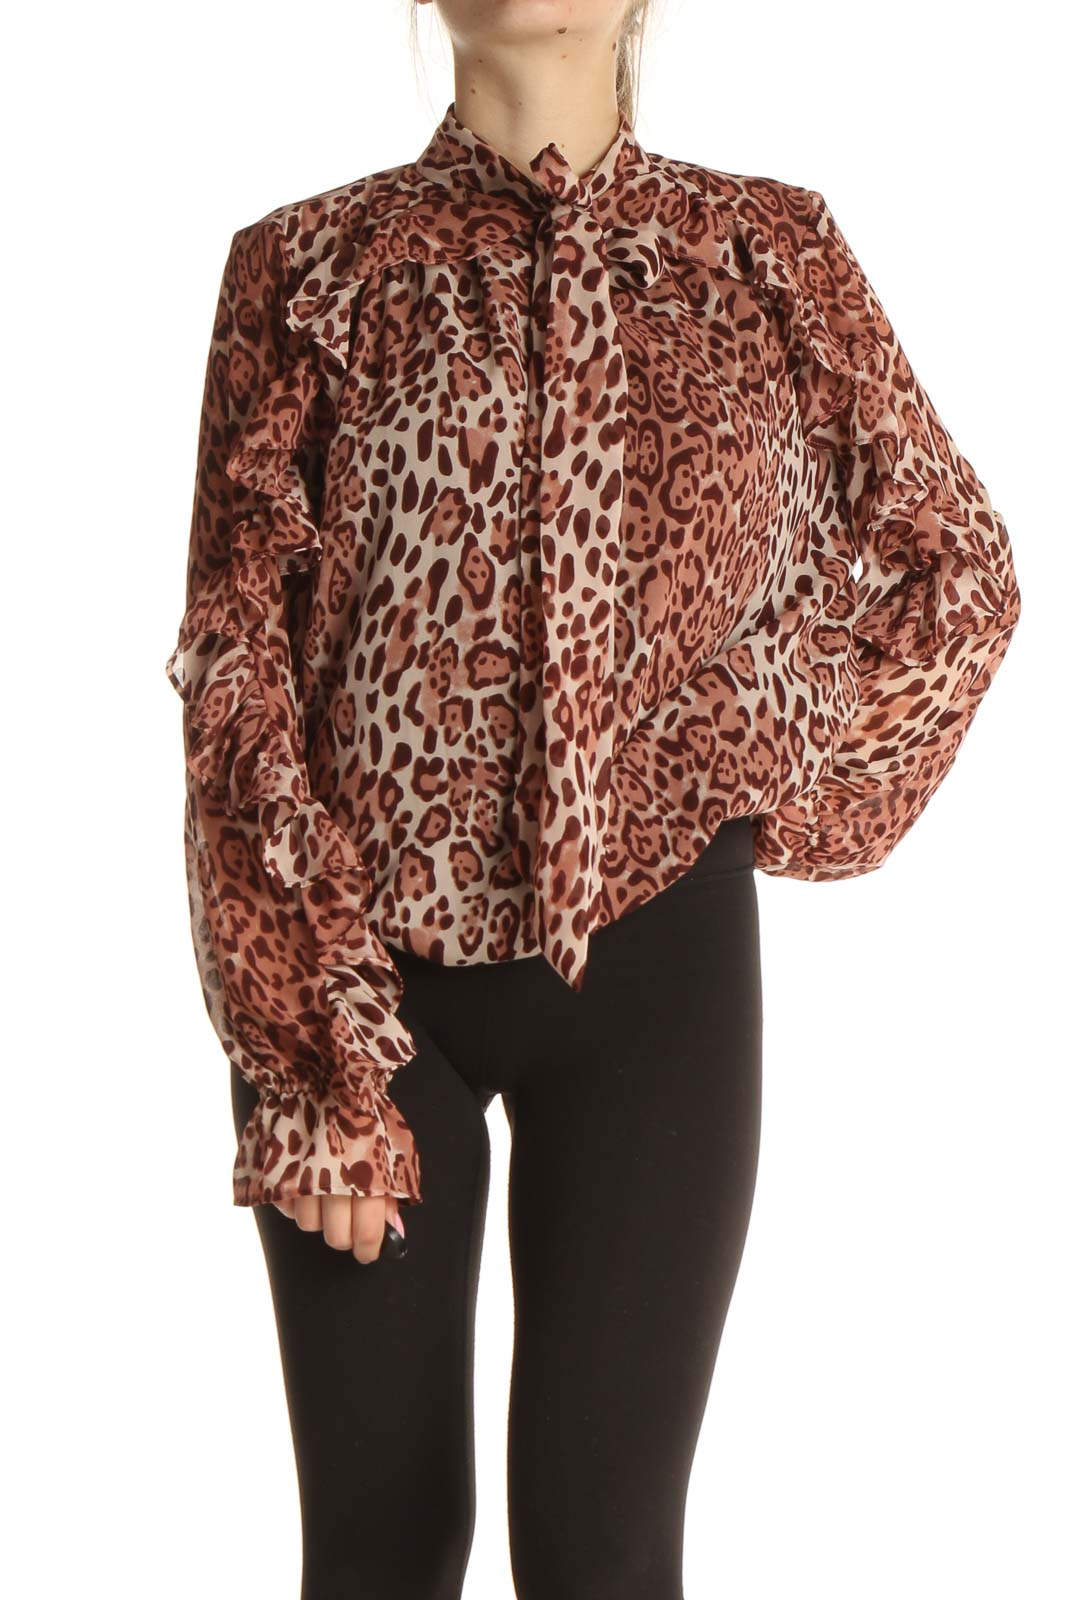 Brown Animal Print Chic Blouse Front